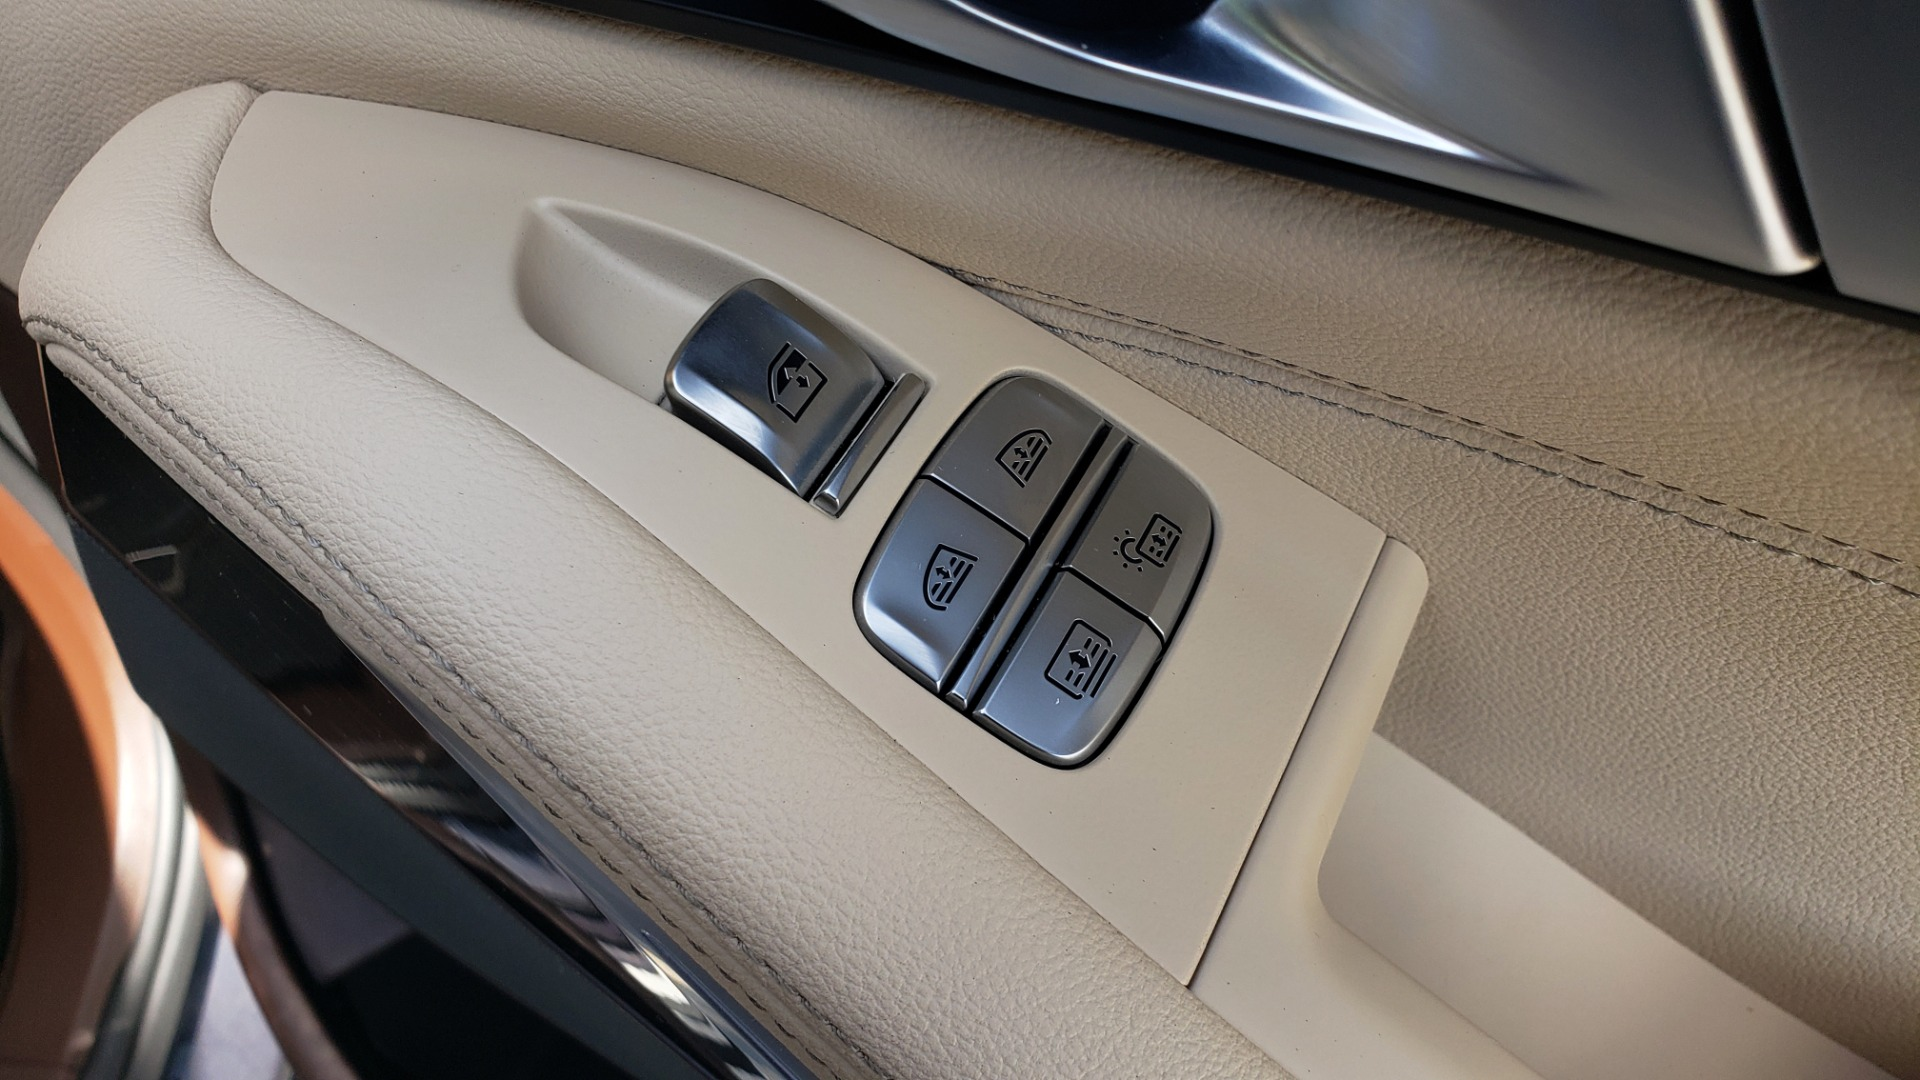 Used 2019 BMW X7 XDRIVE40I PREMIUM / LUXURY / COLD WEATHER / PARK ASST / PANORAMIC SKY / TOW for sale $75,999 at Formula Imports in Charlotte NC 28227 88